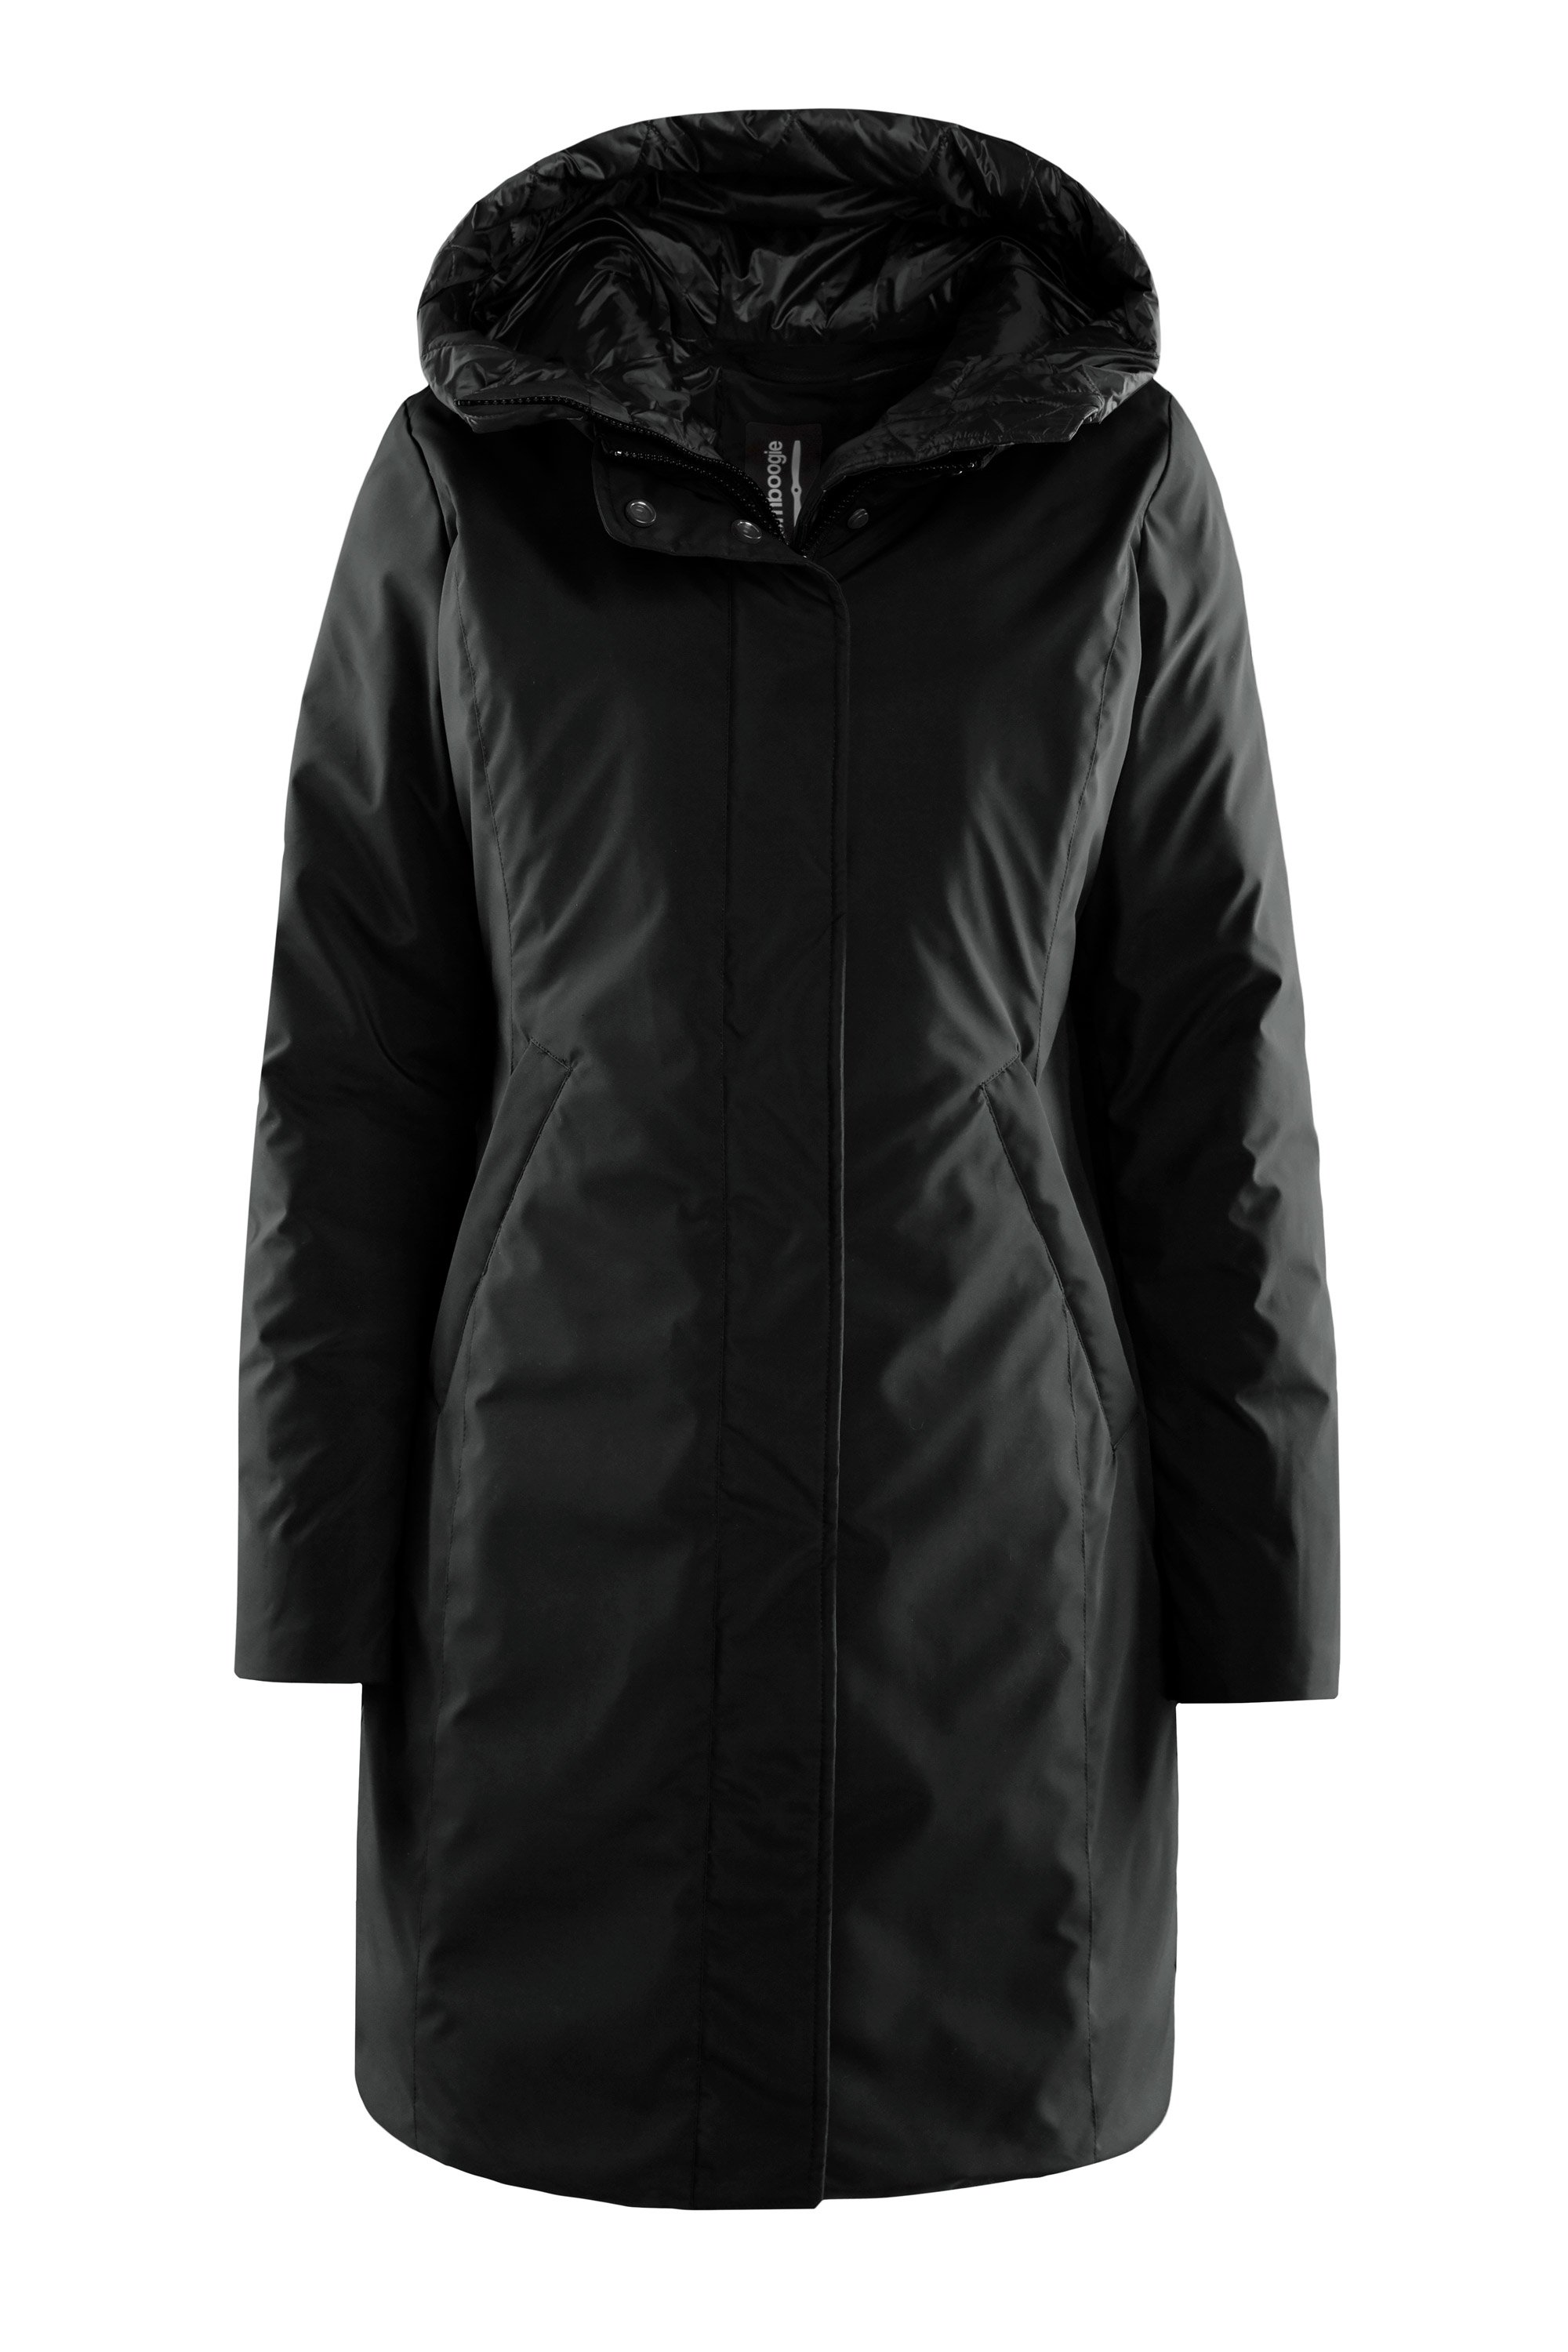 Berna Long Down Jacket